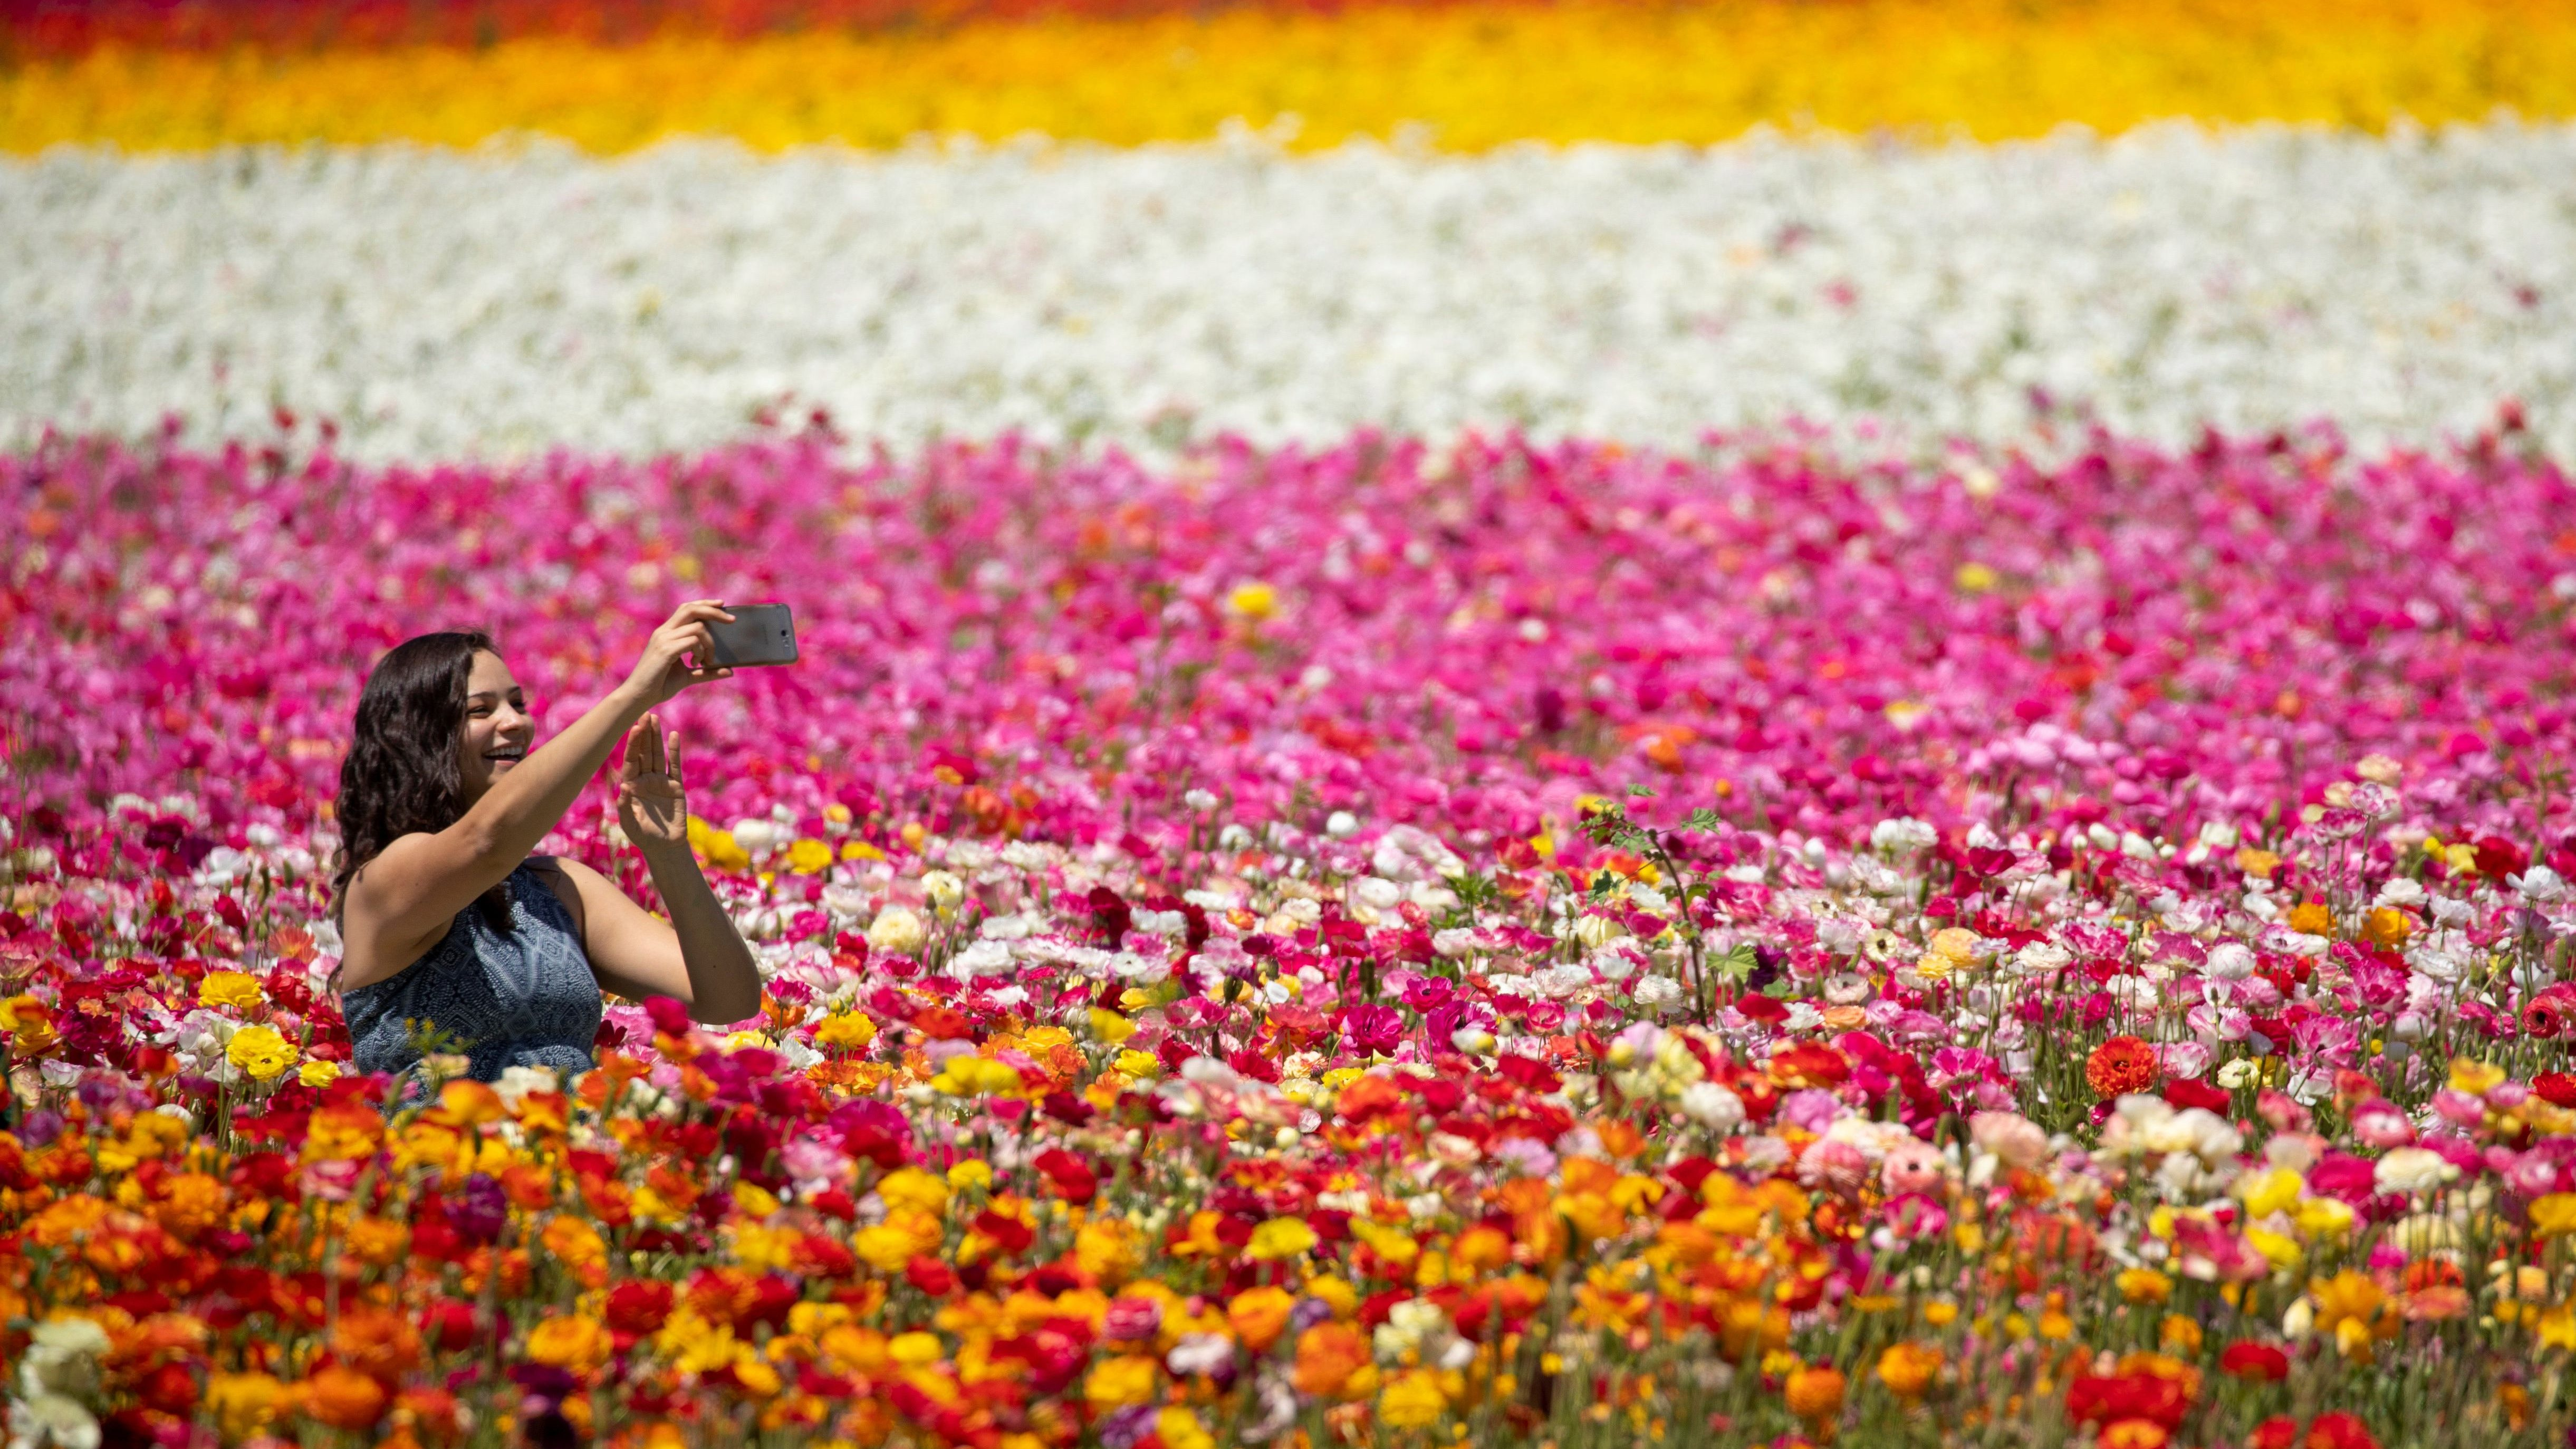 A women takes a selfie as she sits amid thousands of ranunculus flowers at the Flower Fields in Carlsbad, California